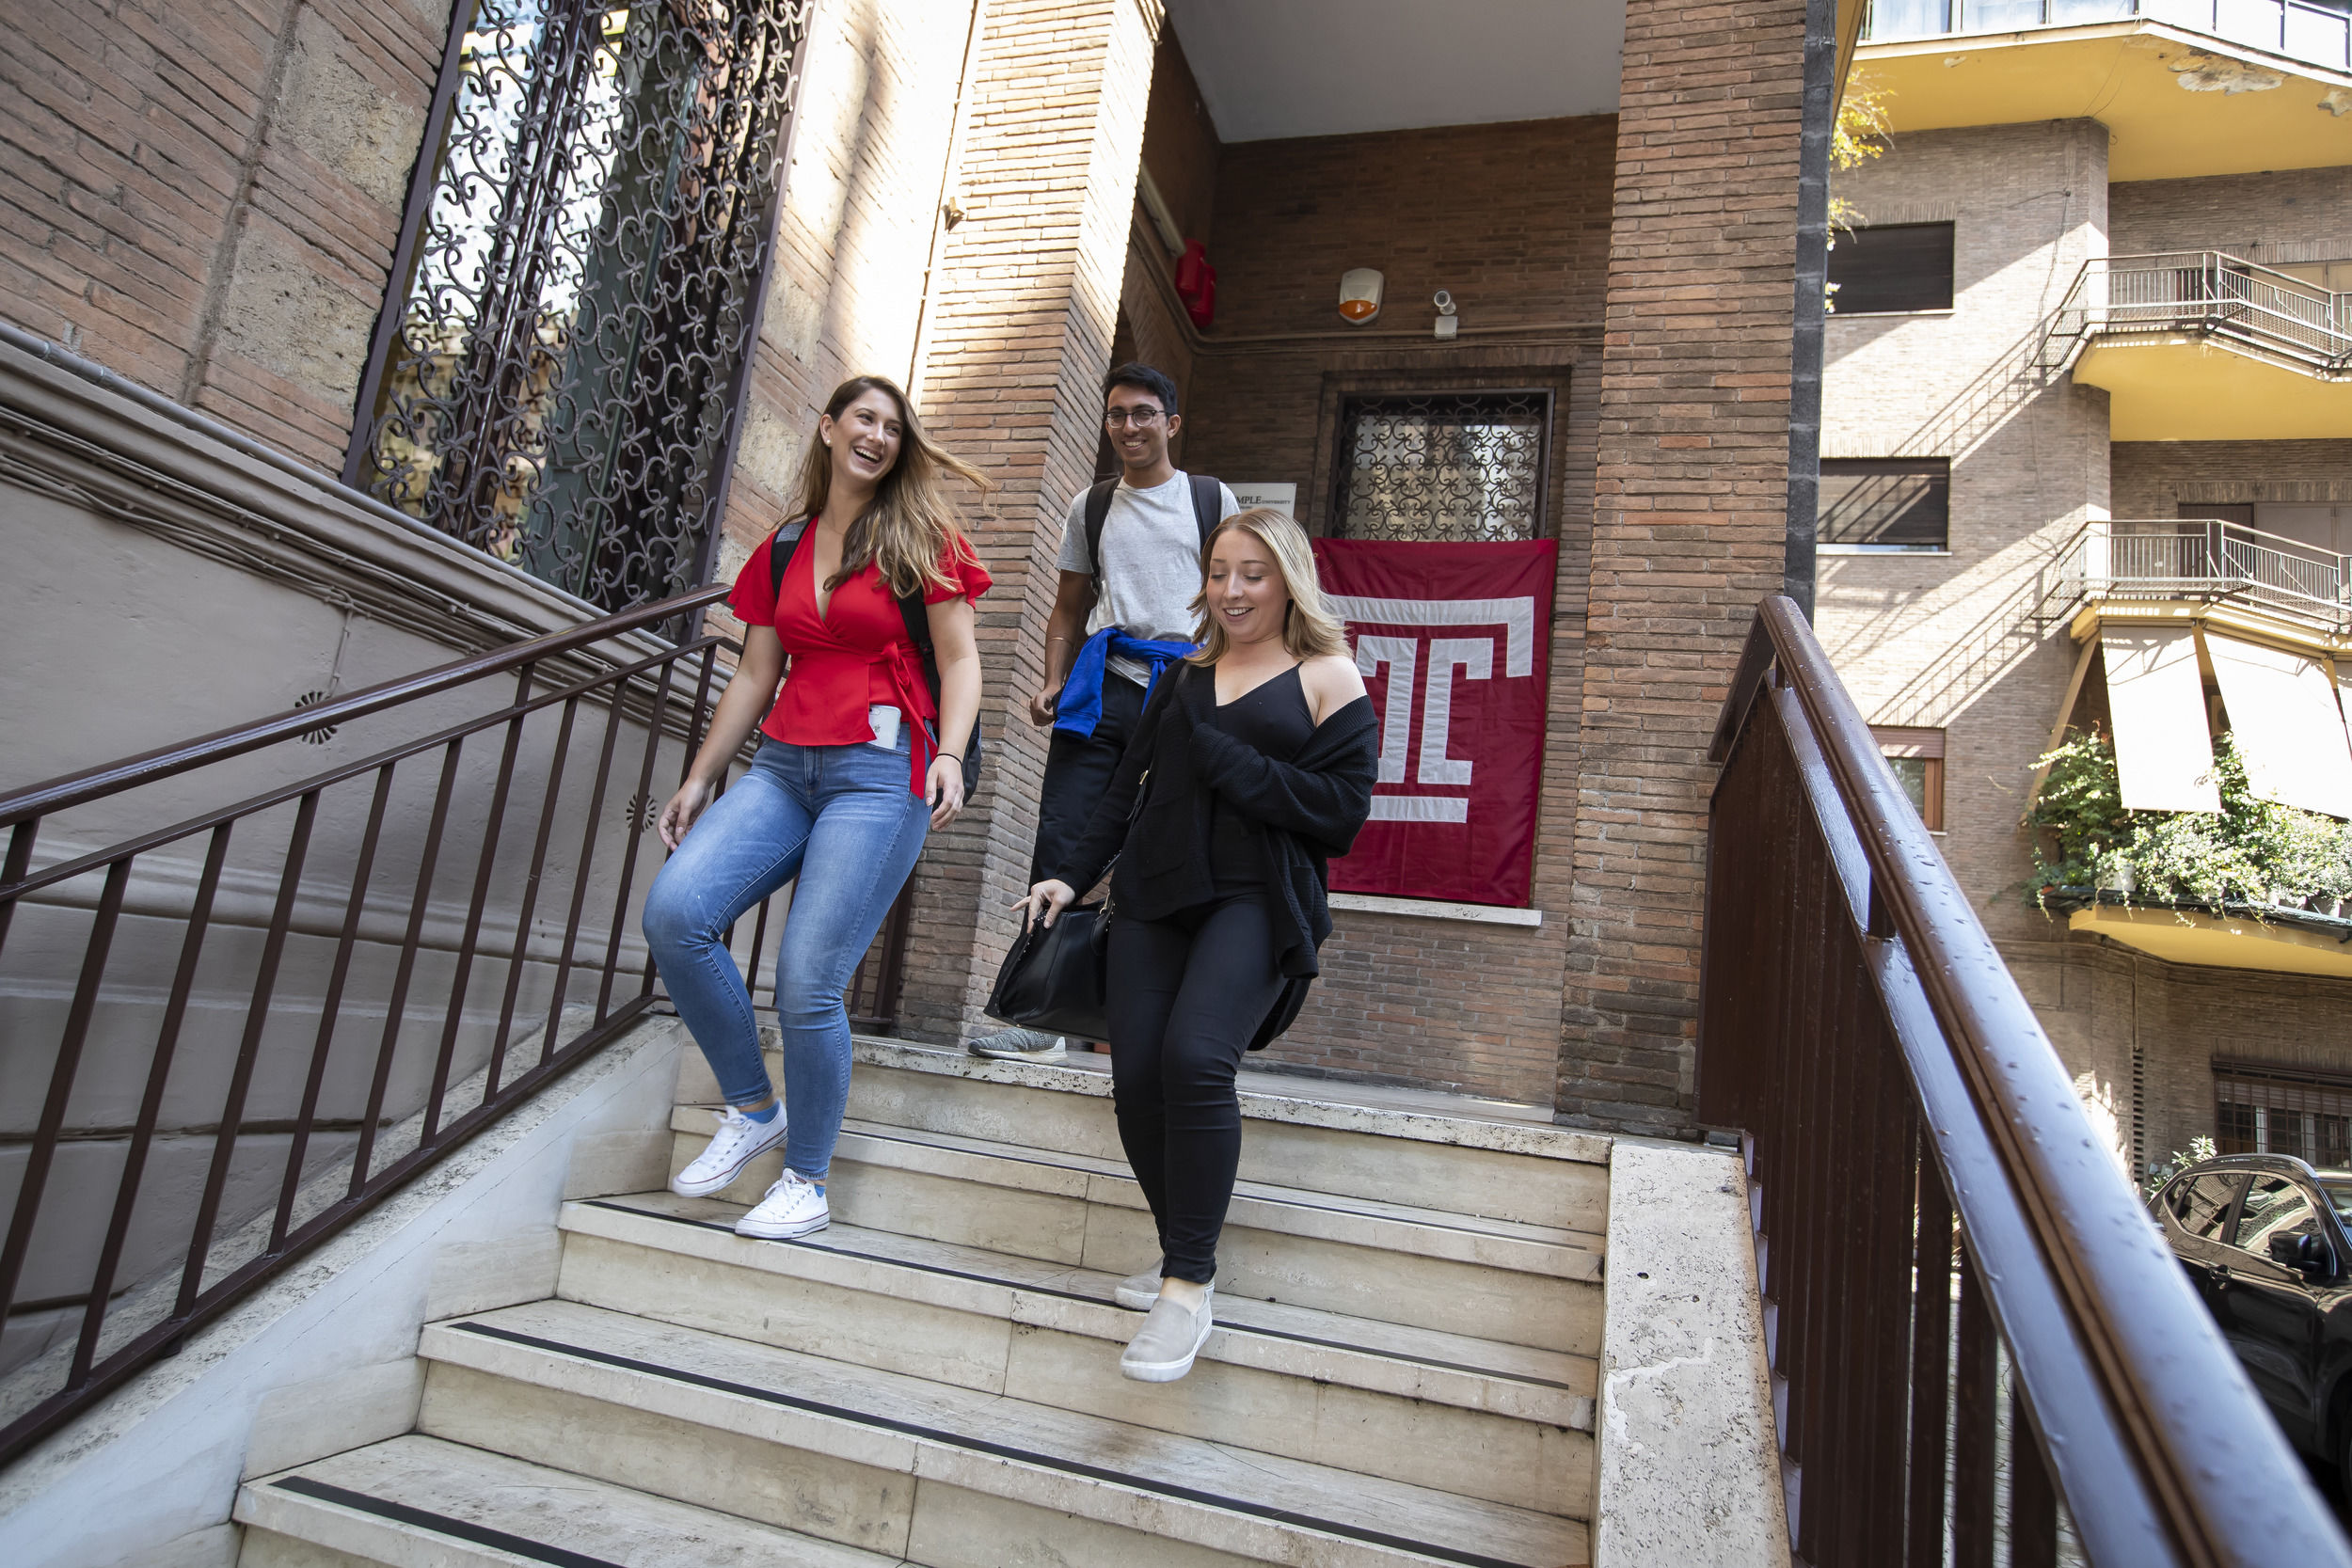 Students leaving a building on Temple Rome campus.